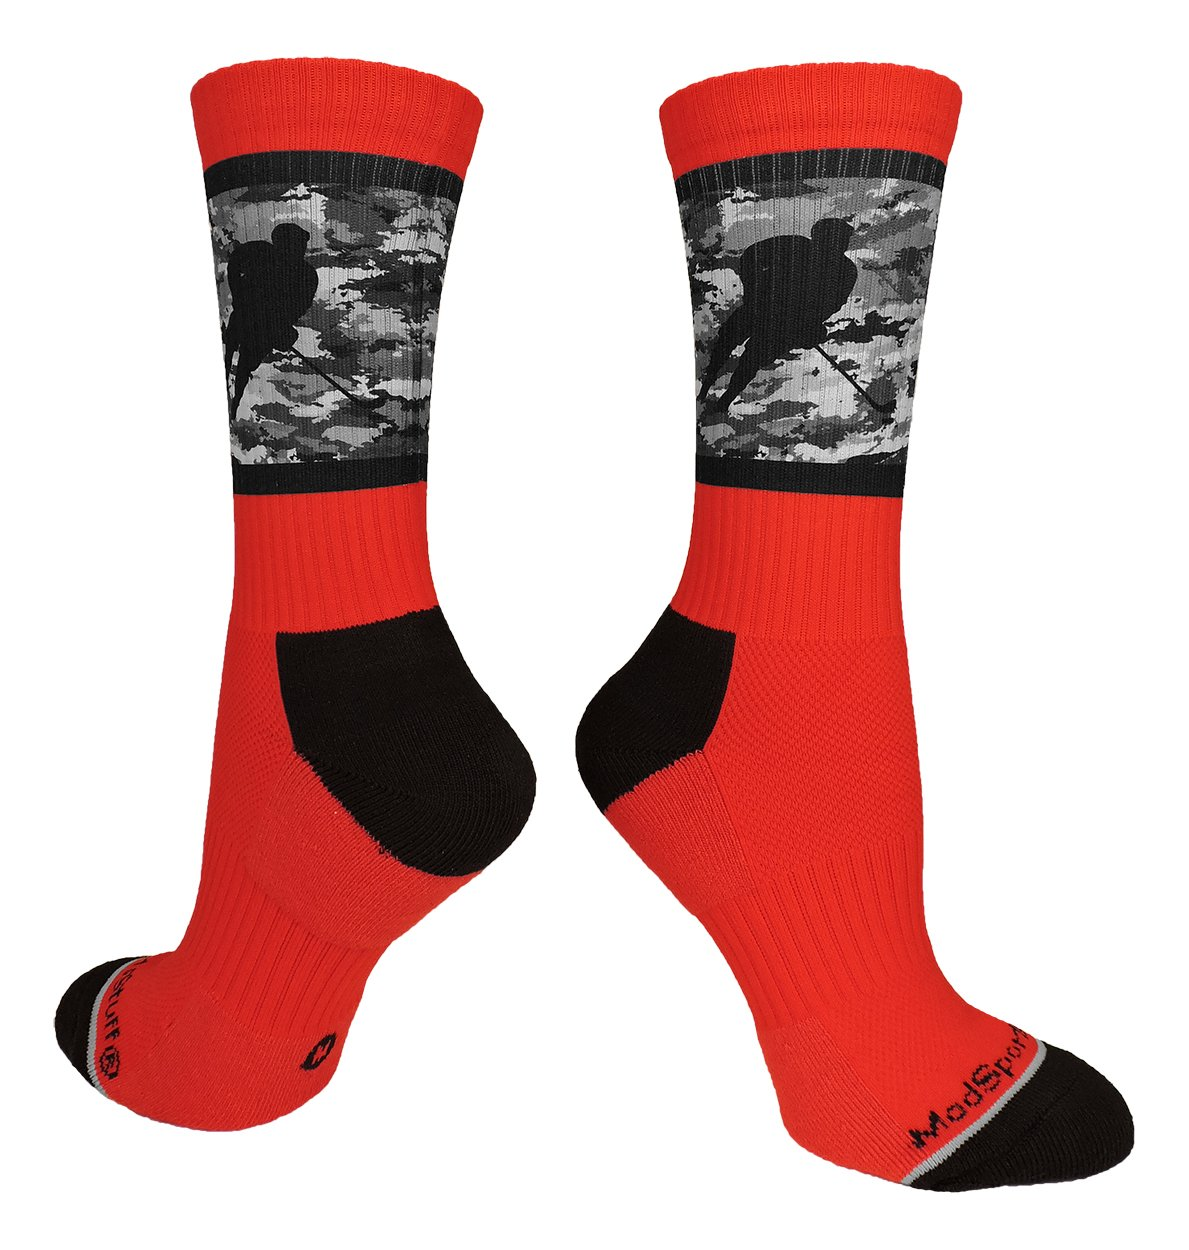 MadSportsStuff Hockey Player Crew Socks (Red/Black Camo, Medium)